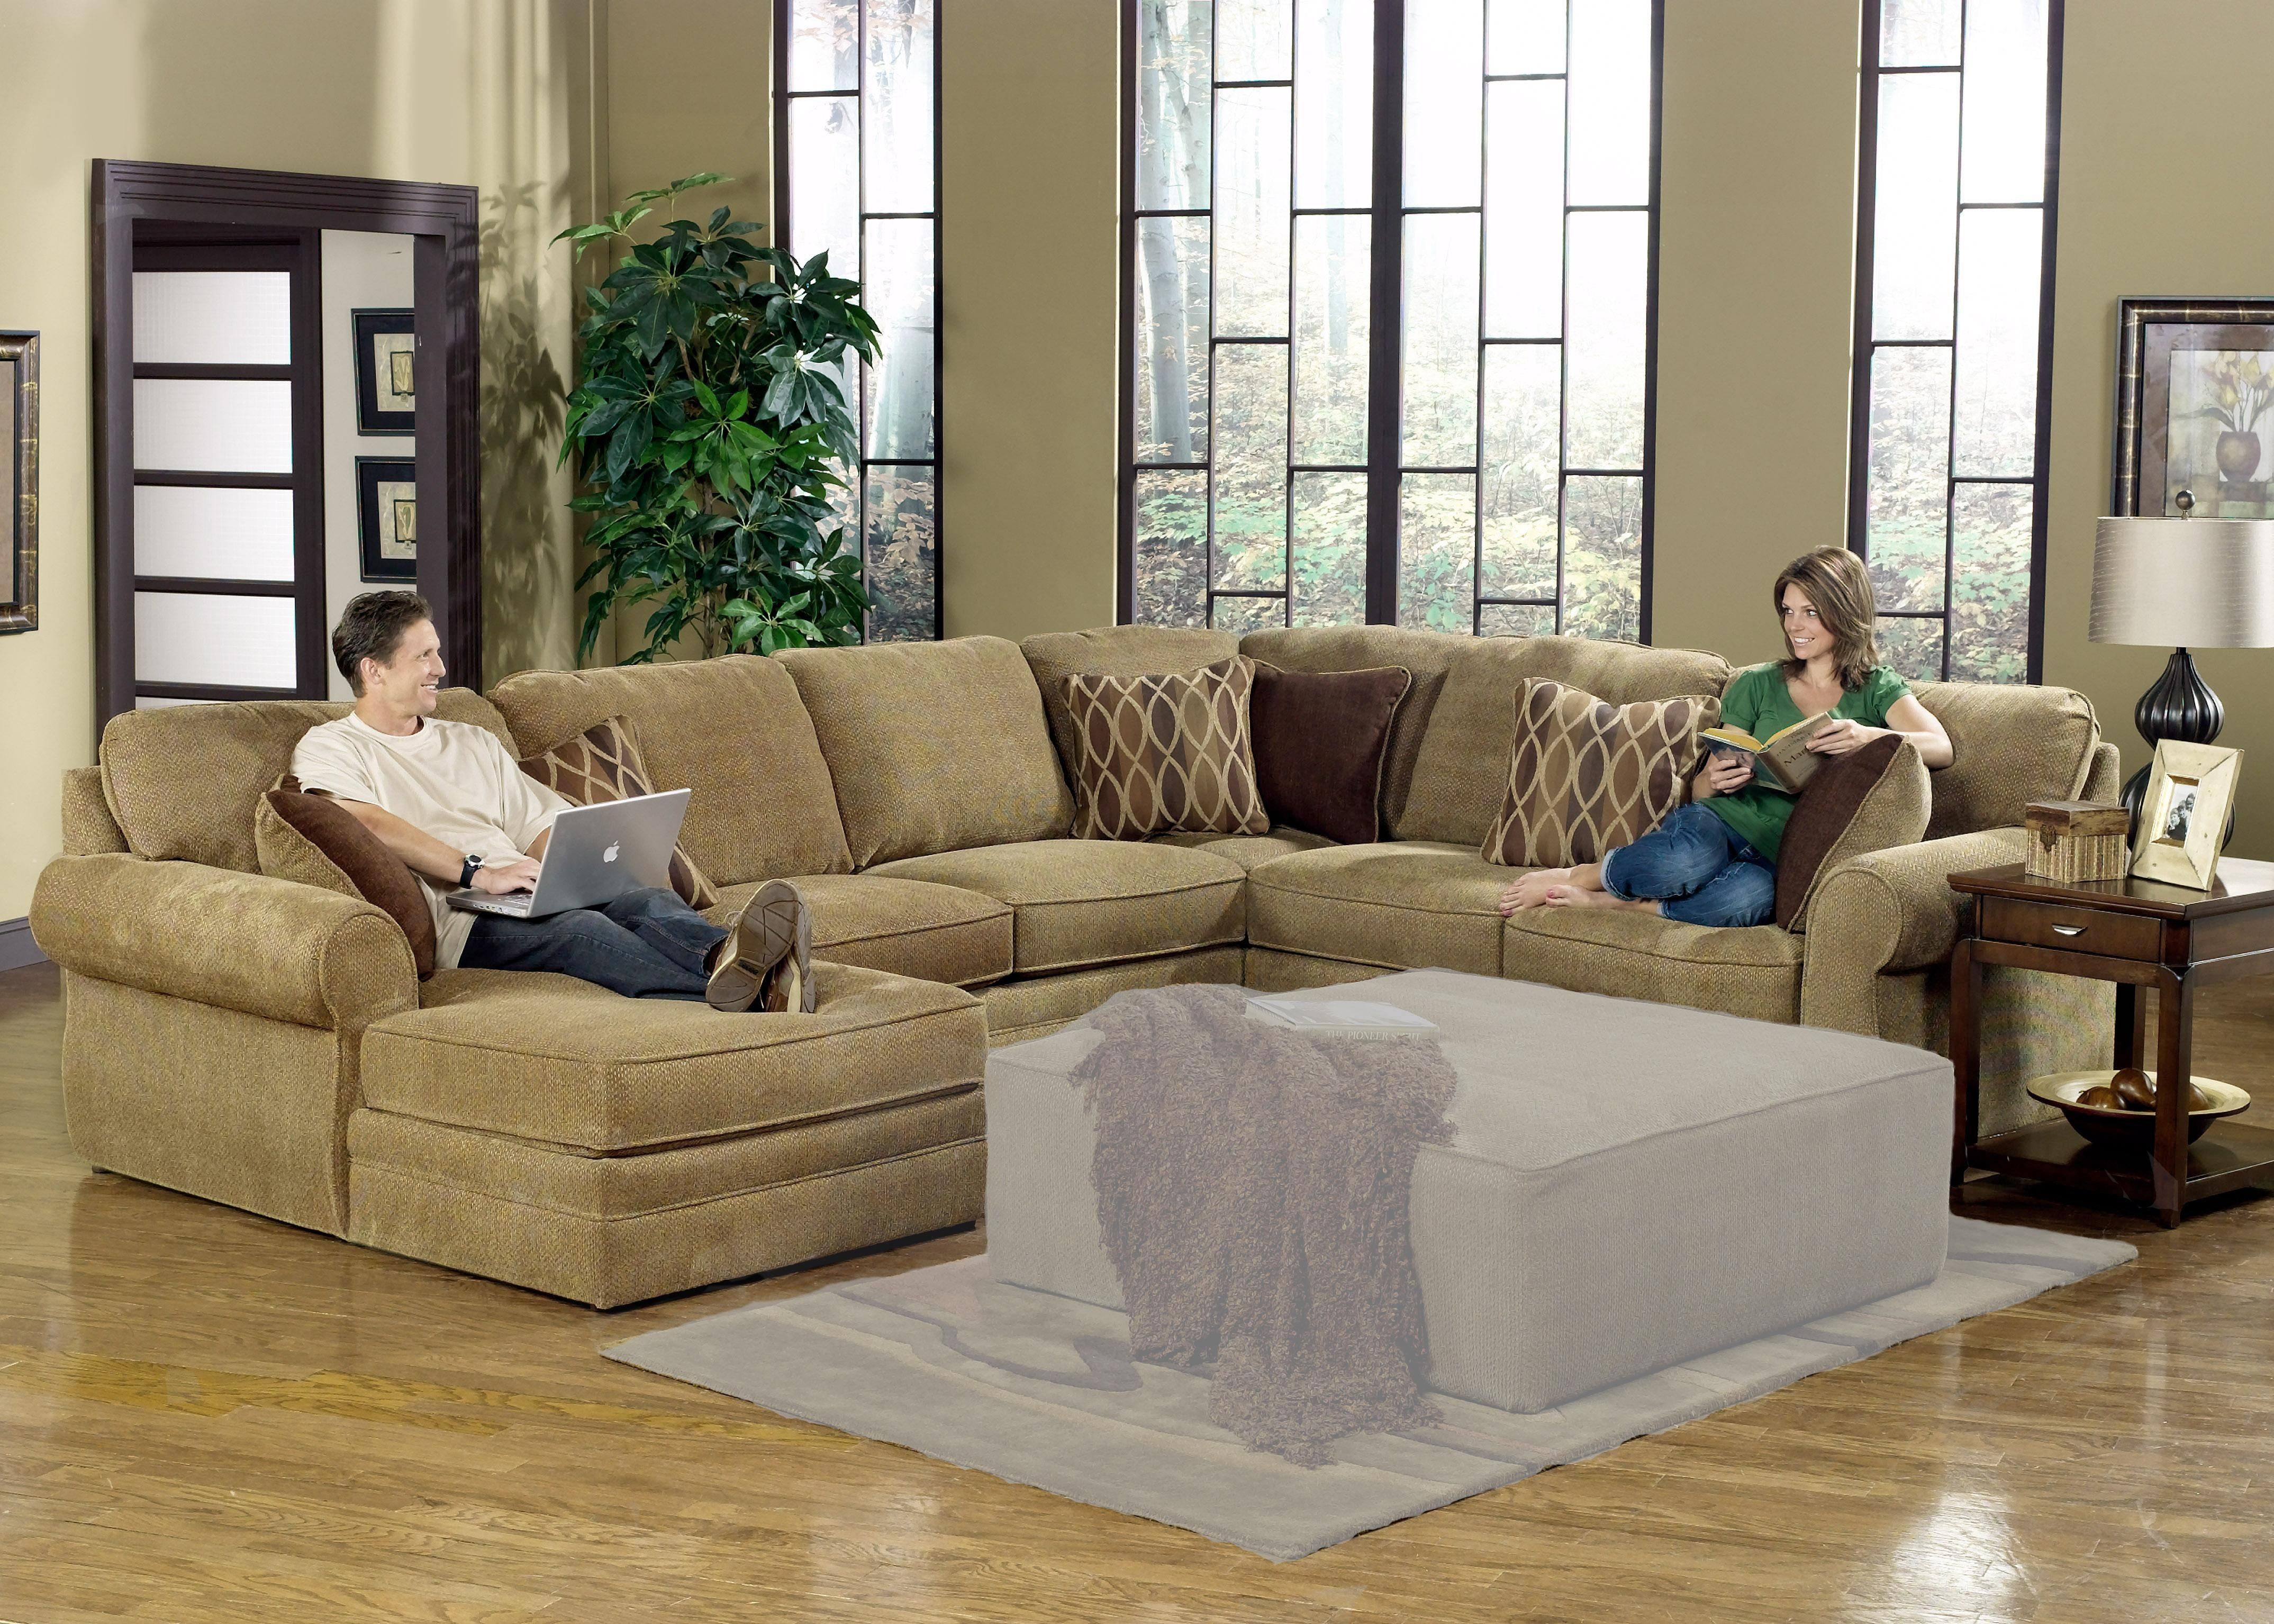 Fascinating U Shaped Sectional Sofas 123 Sofa Sectionals Canada within Ontario Sectional Sofas (Image 3 of 10)